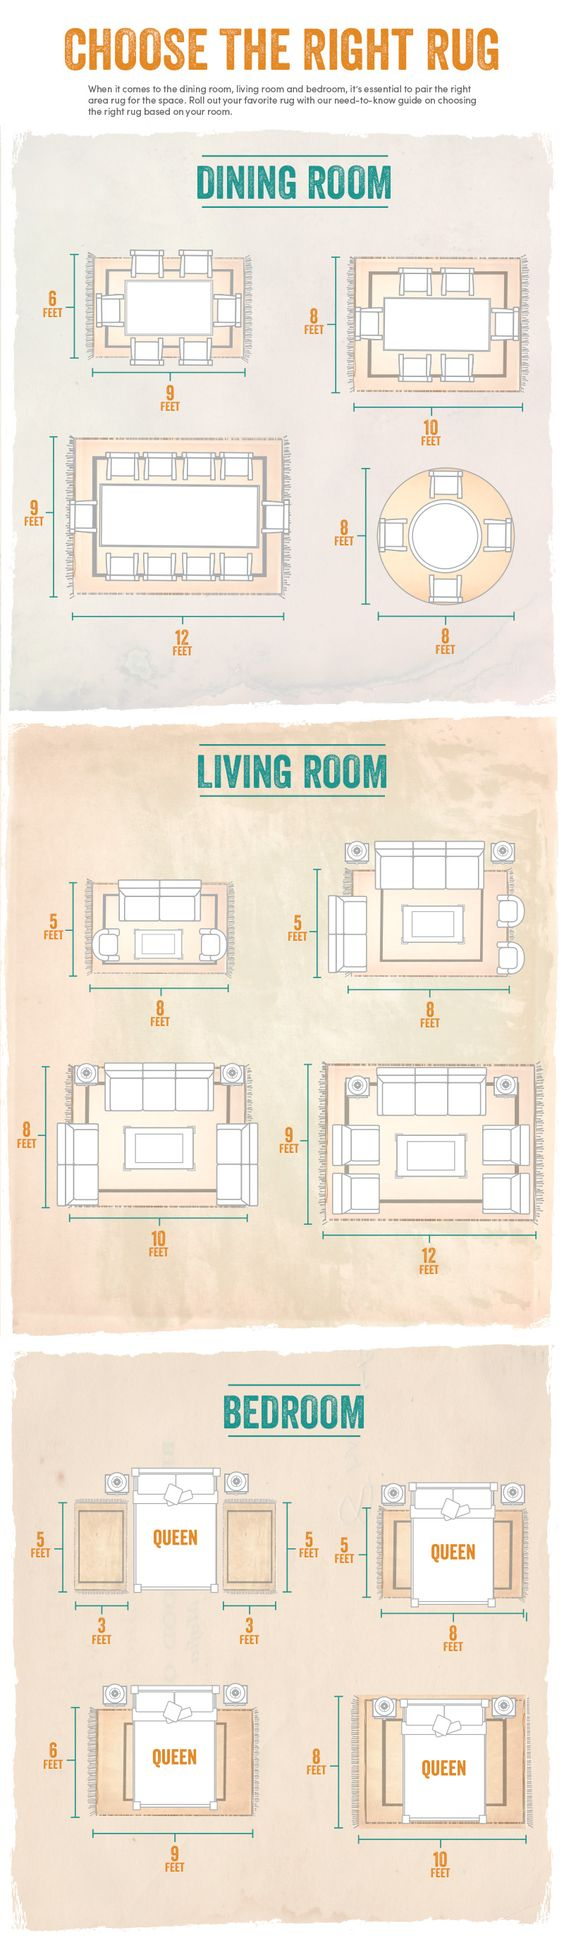 Choose the Right Rug for Your Space | Rug placement, Holidays and Room